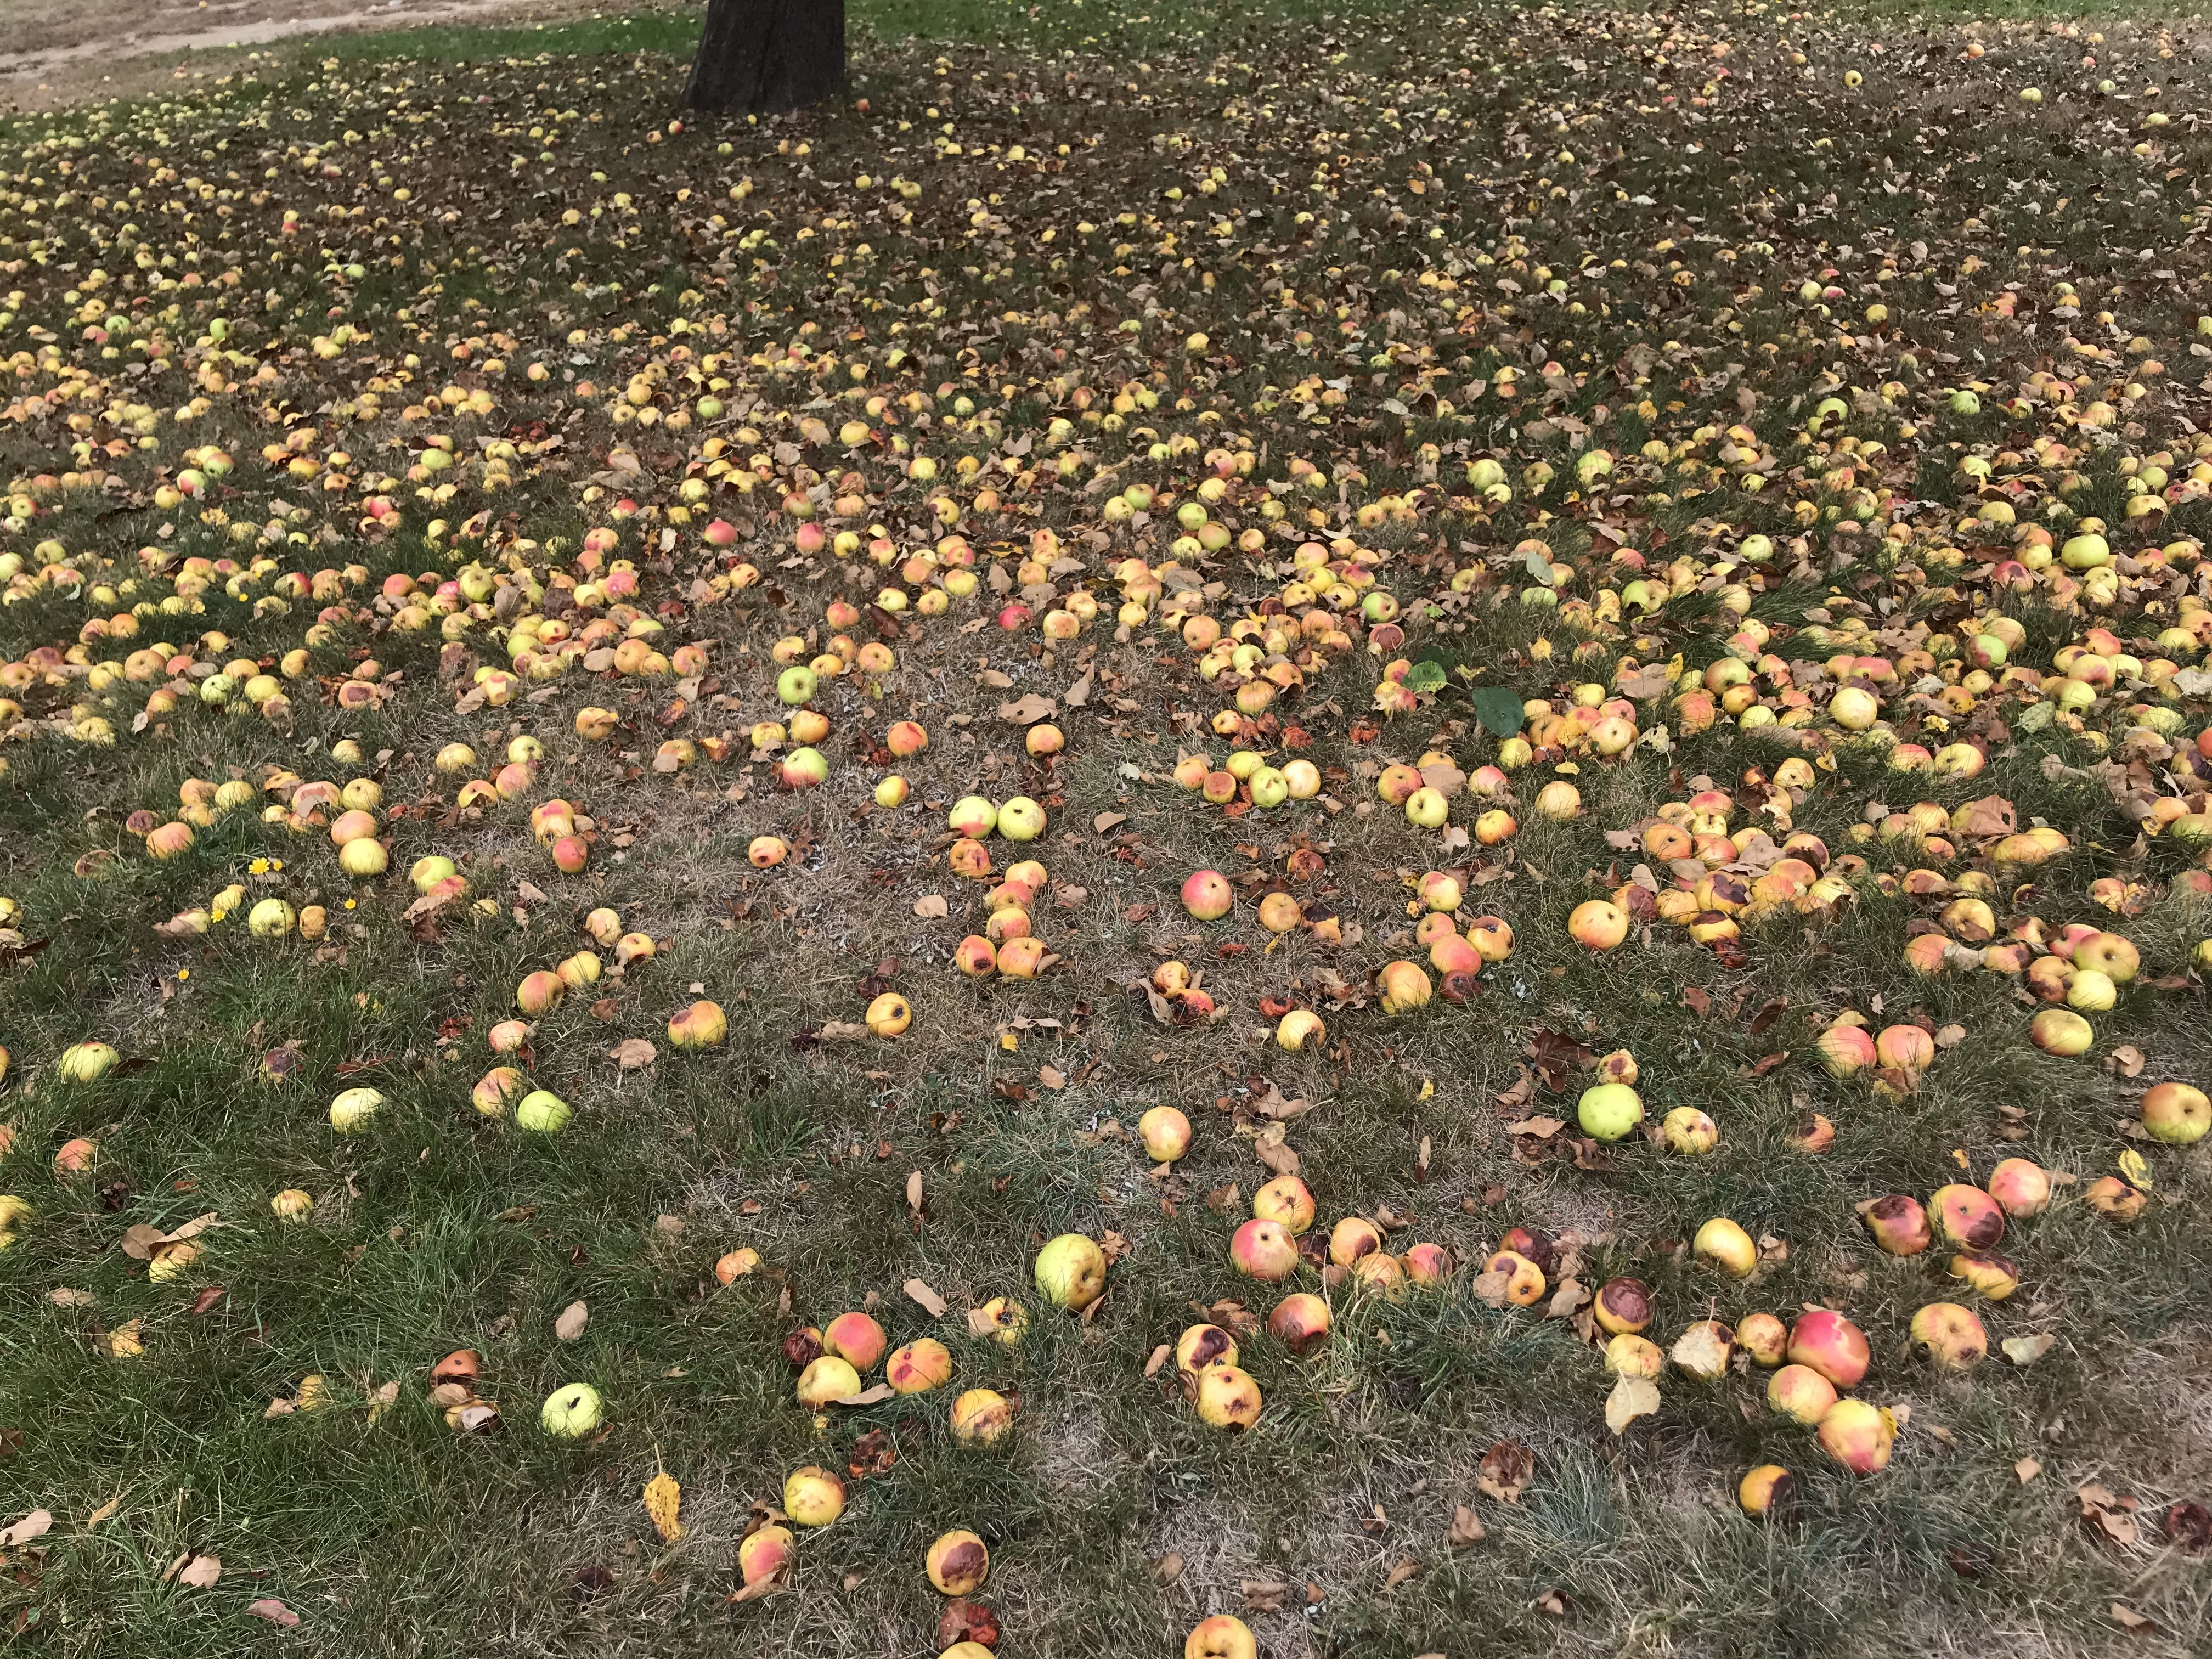 Apples ground